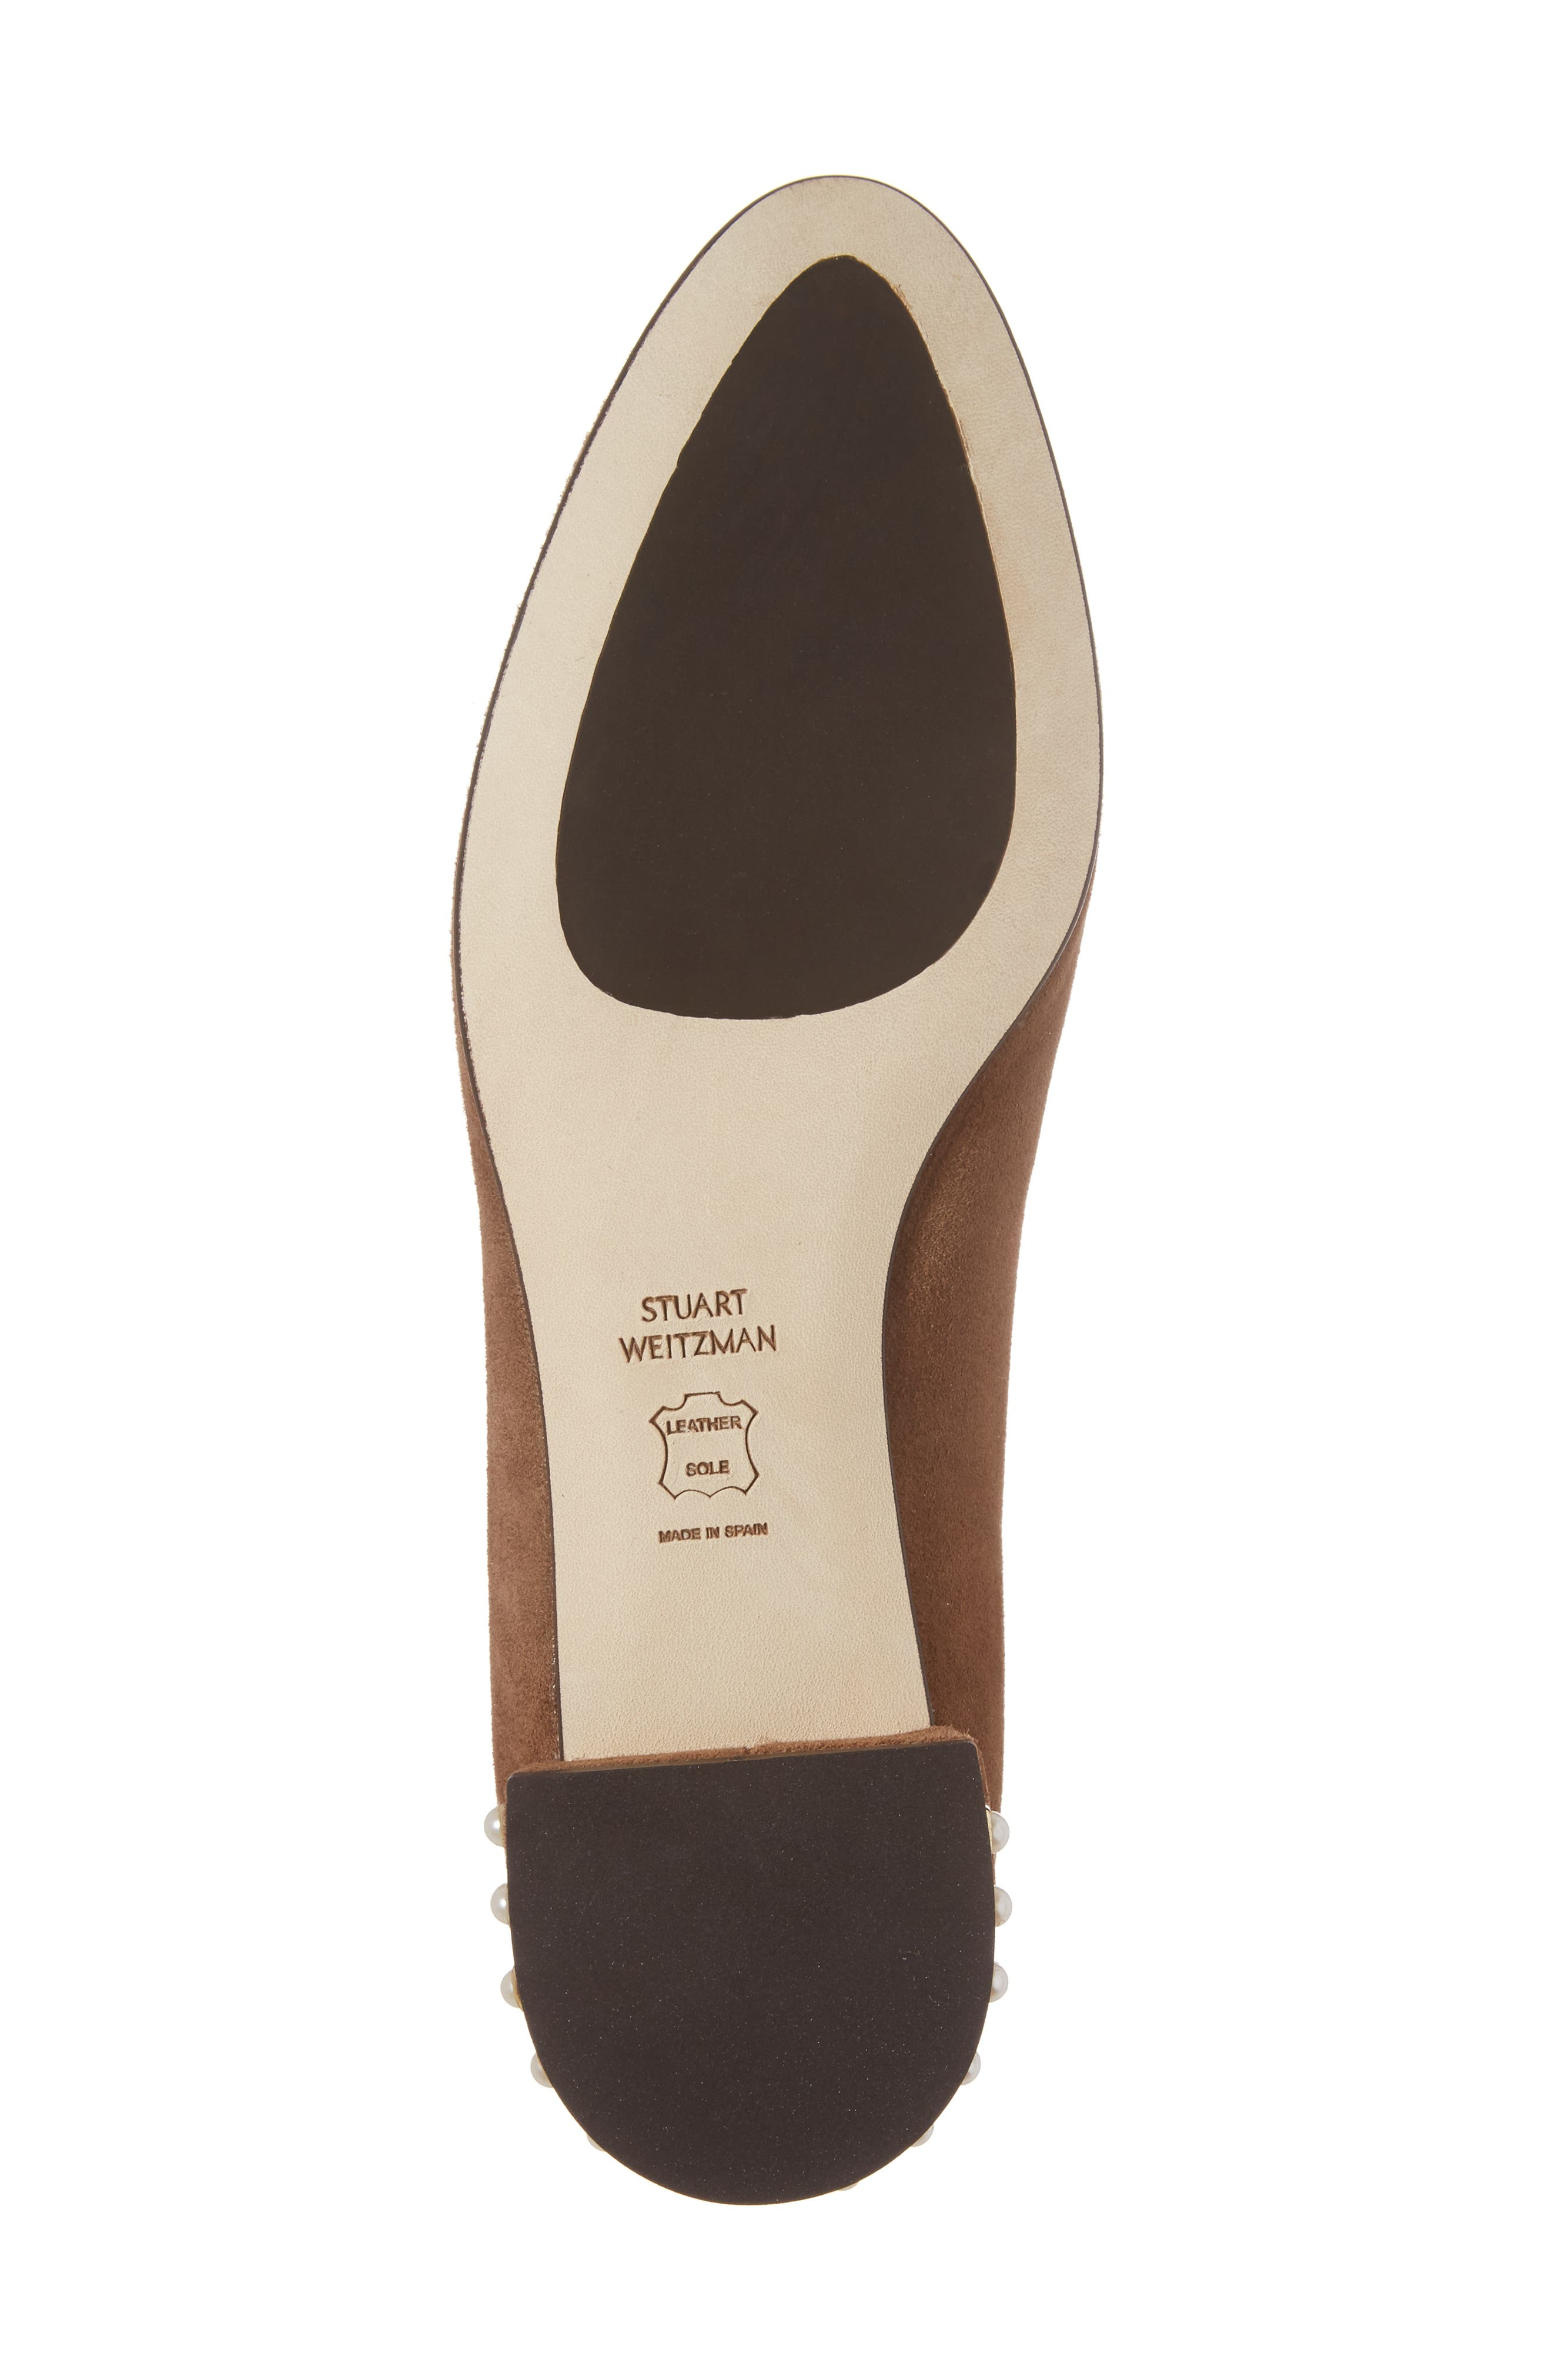 Chicpearl Ballet Flat,                             Alternate thumbnail 6, color,                             Nutmeg Suede